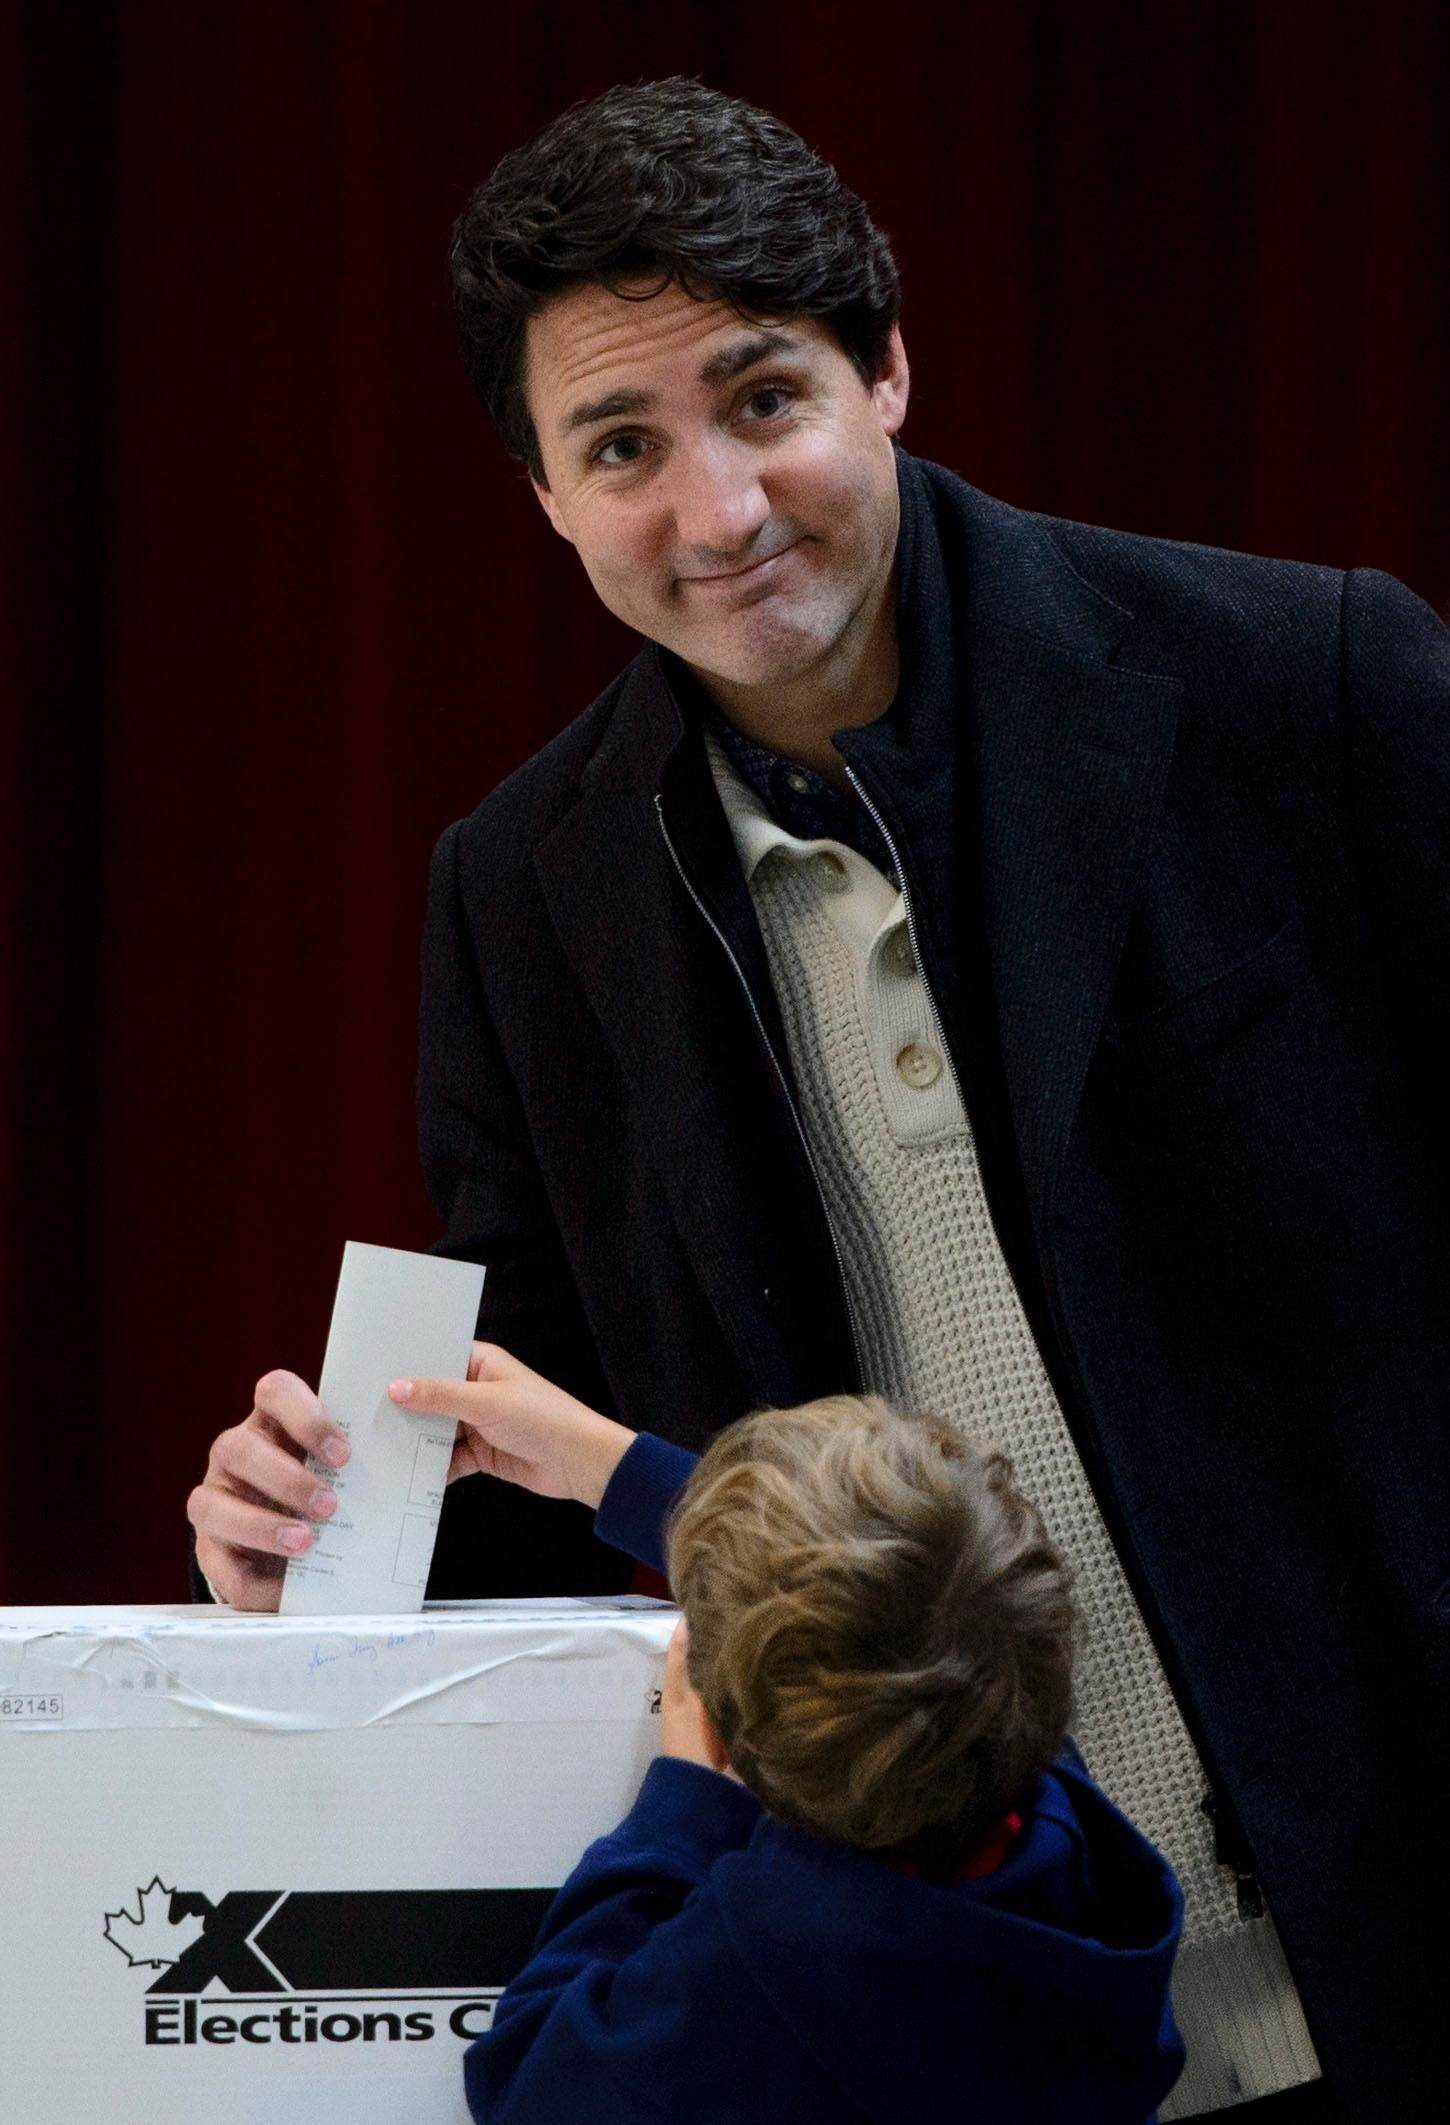 Hadrien helps his dad, Canadian Prime Minister and Liberal Leader Justin Trudeau, cast his ballot in Montreal, Monday, Oct. 21, 2019. Trudeau faced the threat of being knocked from power after one term as the nation held parliamentary elections on Monday. (Sean Kilpatrick/The Canadian Press via AP)